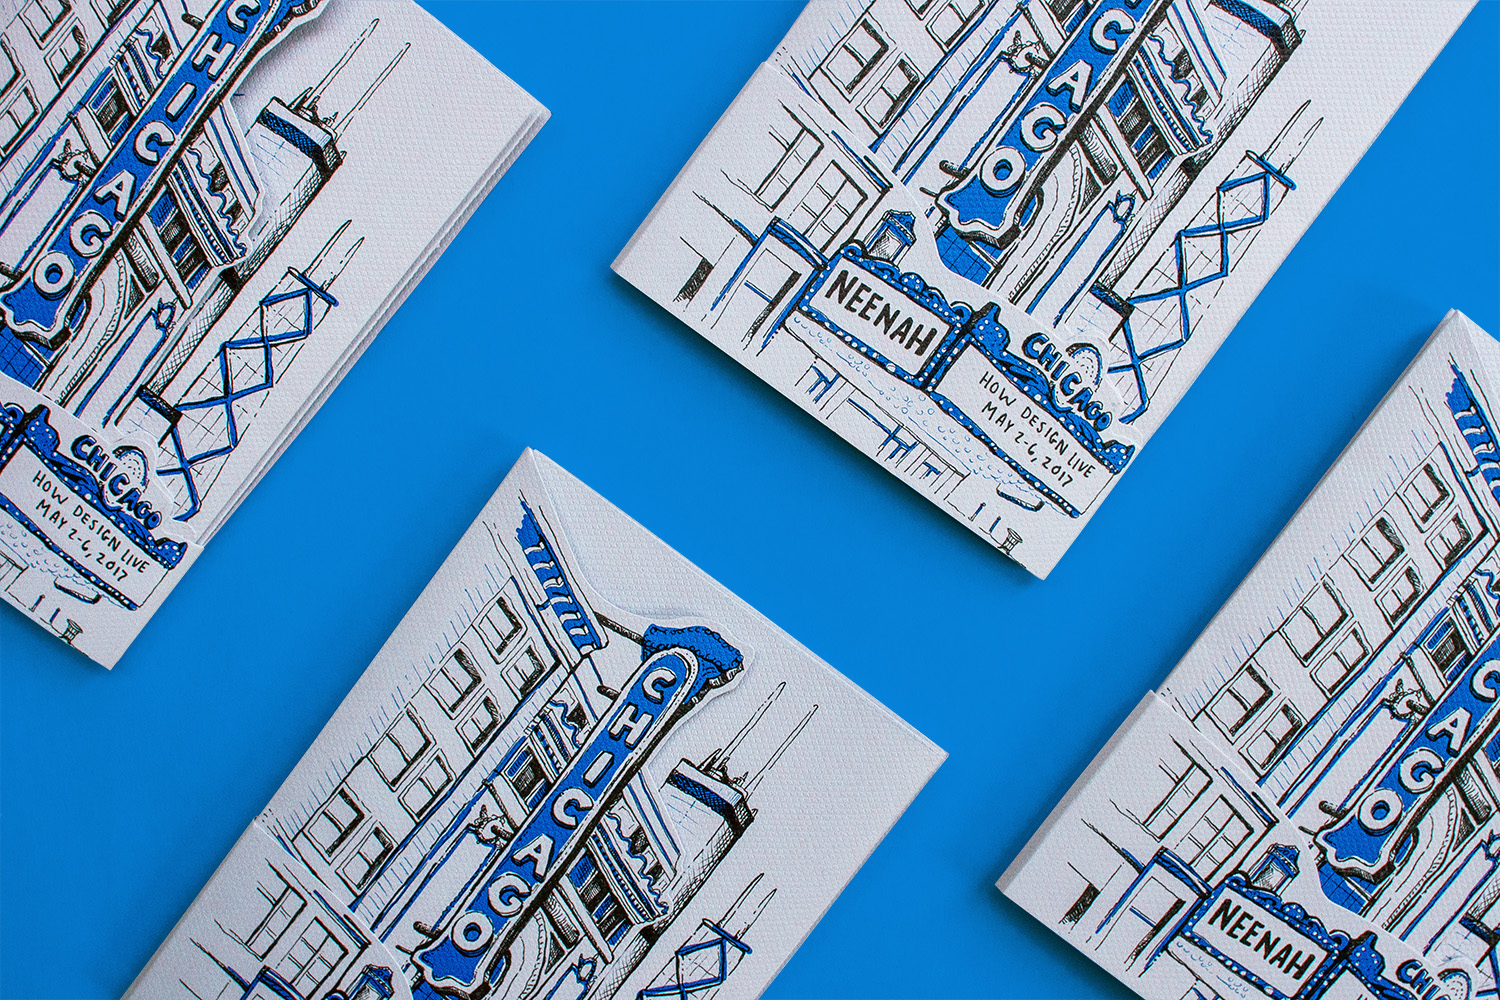 Cover design for Neenah Presents Chicago at HOW Design Live May 2-6 2017, featuring hand lettering and hand drawn illustrations of the Chicago Theater and the skyline.